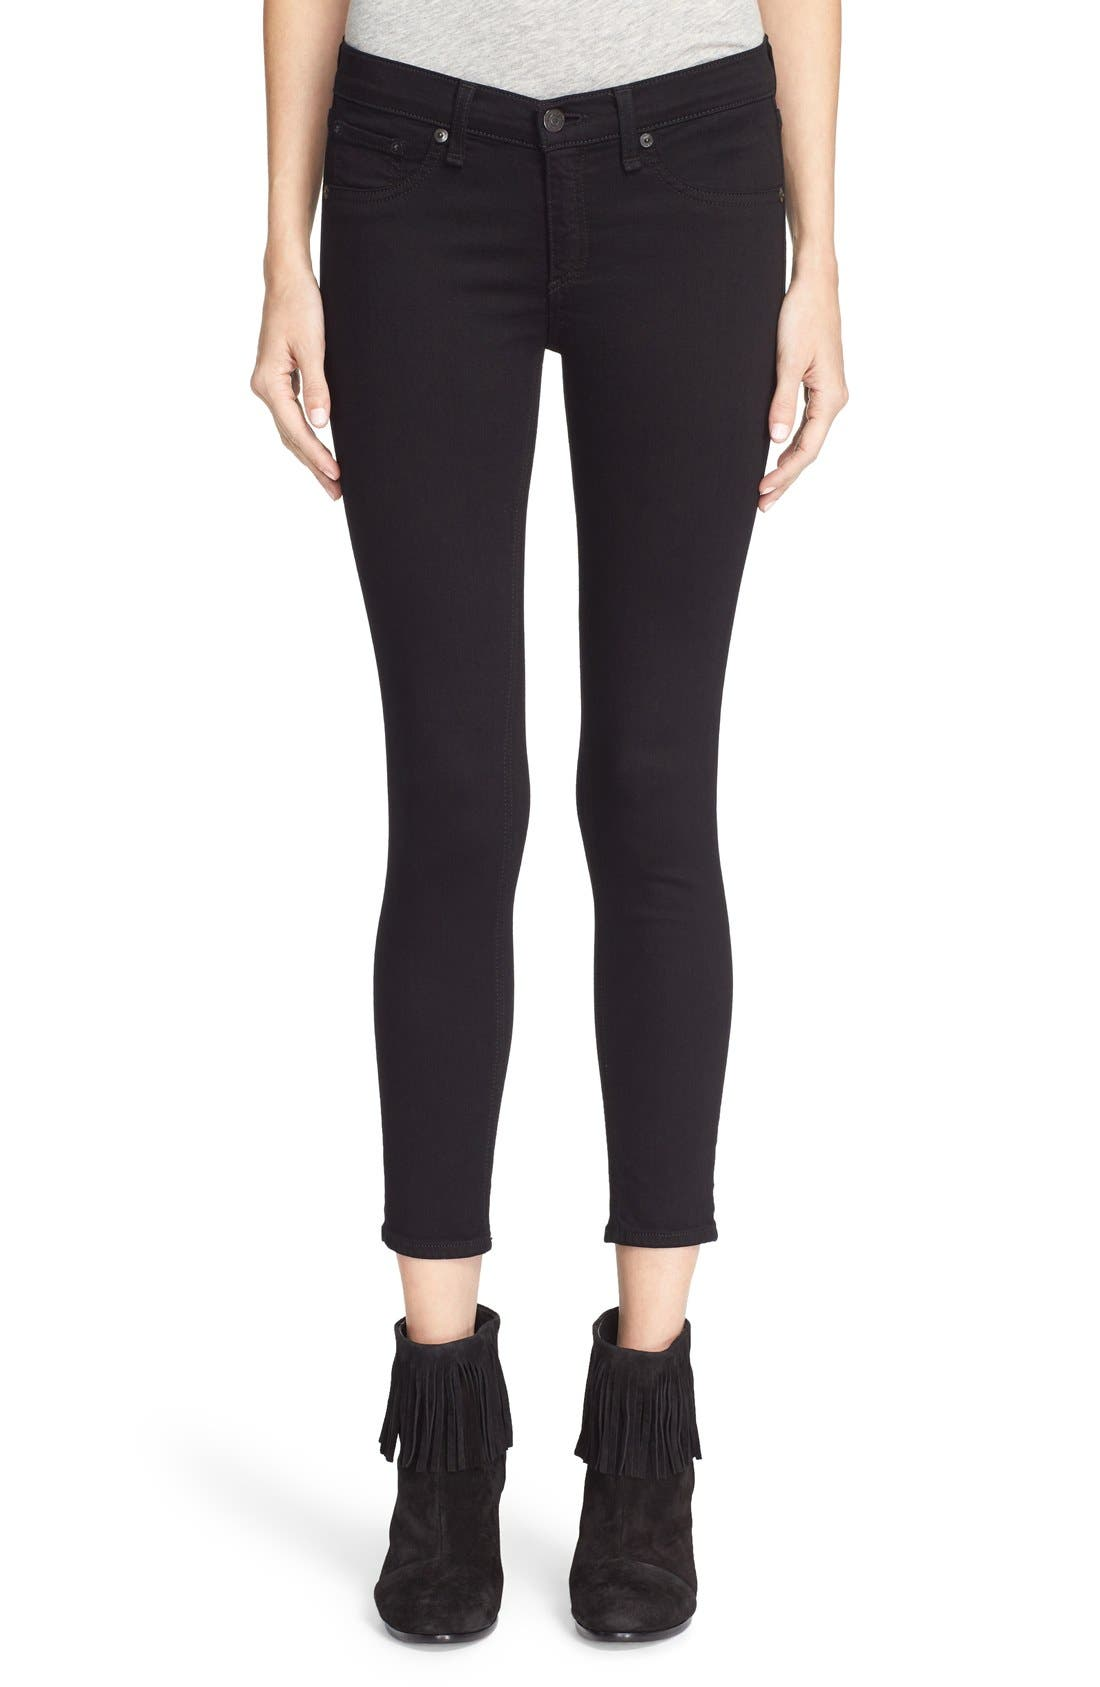 Alternate Image 1 Selected - rag & bone/JEAN Capri Skinny Jeans